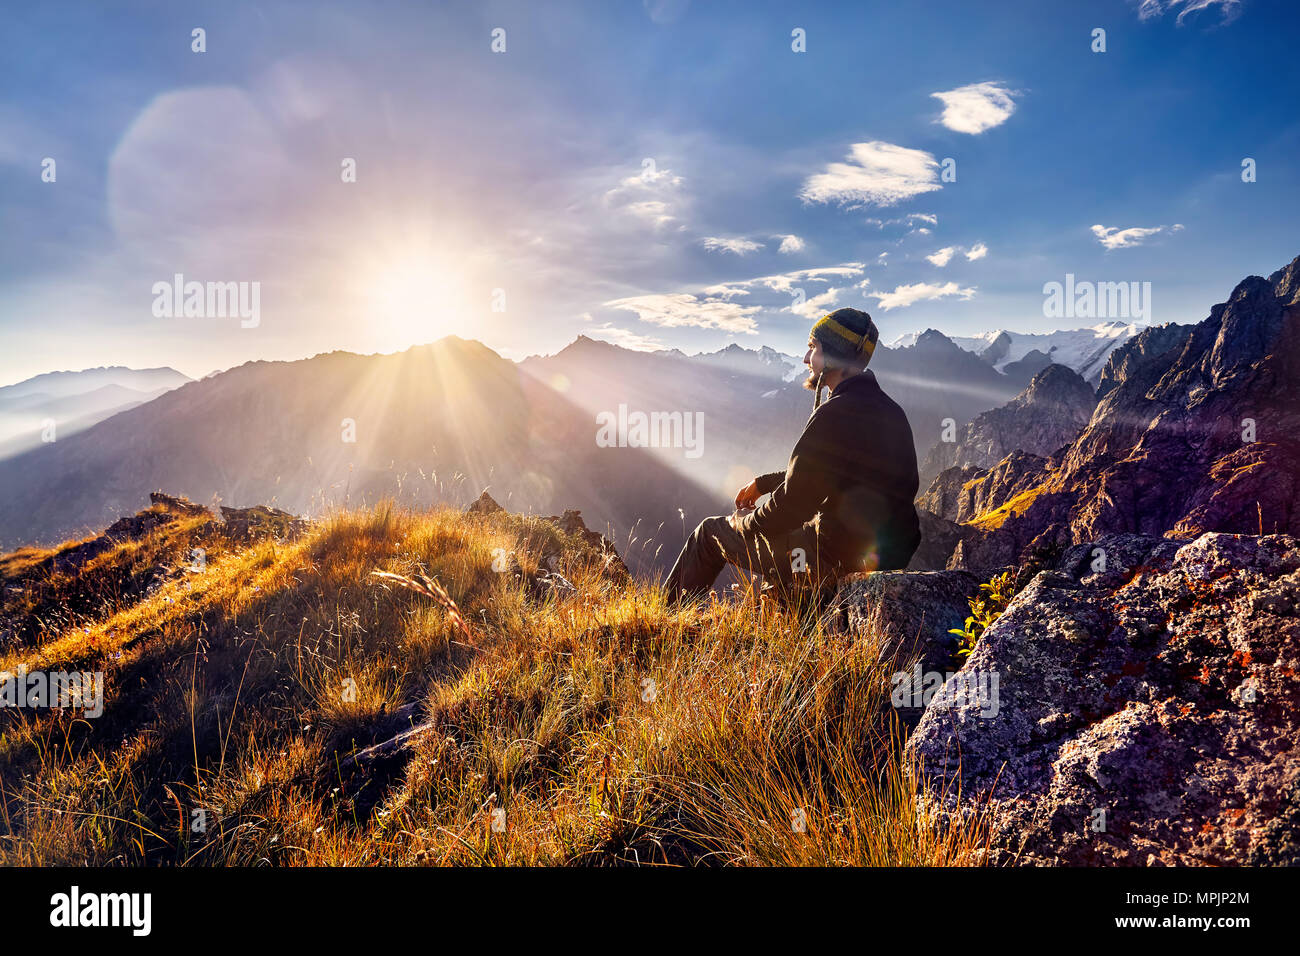 Tourist in Nepali hat sitting on the hill and looking at sunrise in the mountains - Stock Image